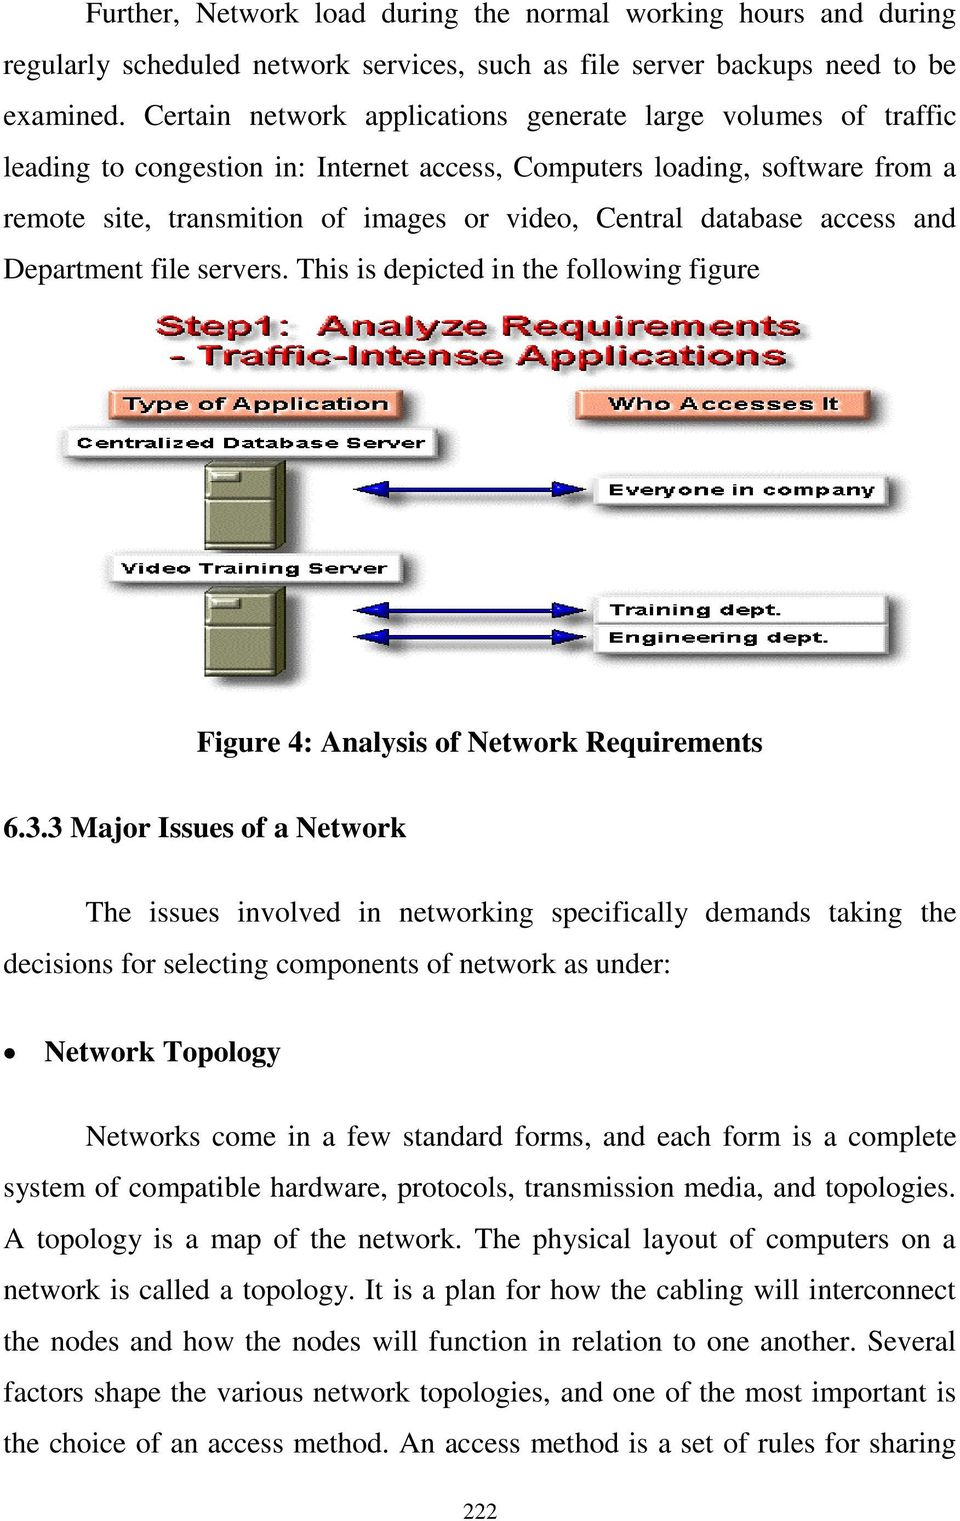 database access and Department file servers. This is depicted in the following figure Figure 4: Analysis of Network Requirements 6.3.